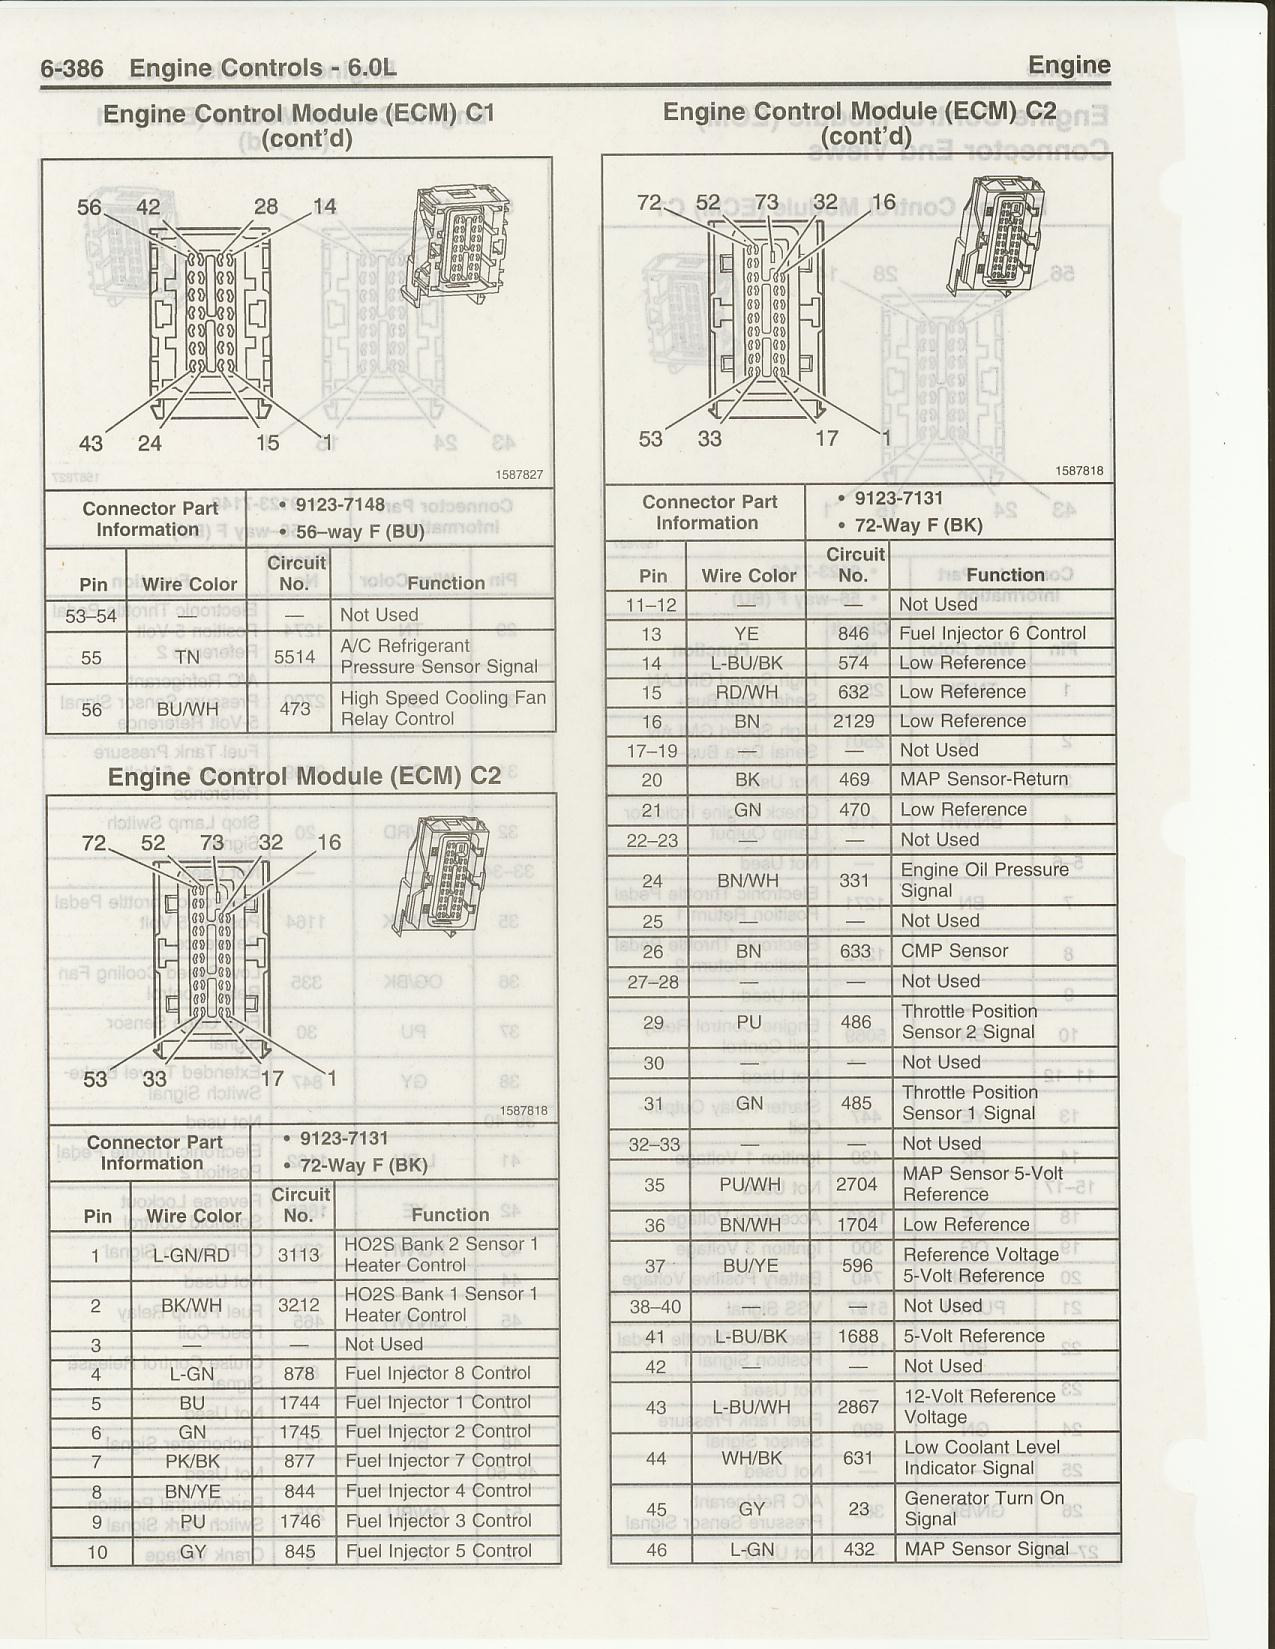 B Cat 5 Cable Wiring Diagram 06 Gto Ls2 Stand Alone Harness Not Matching Gm Schematics